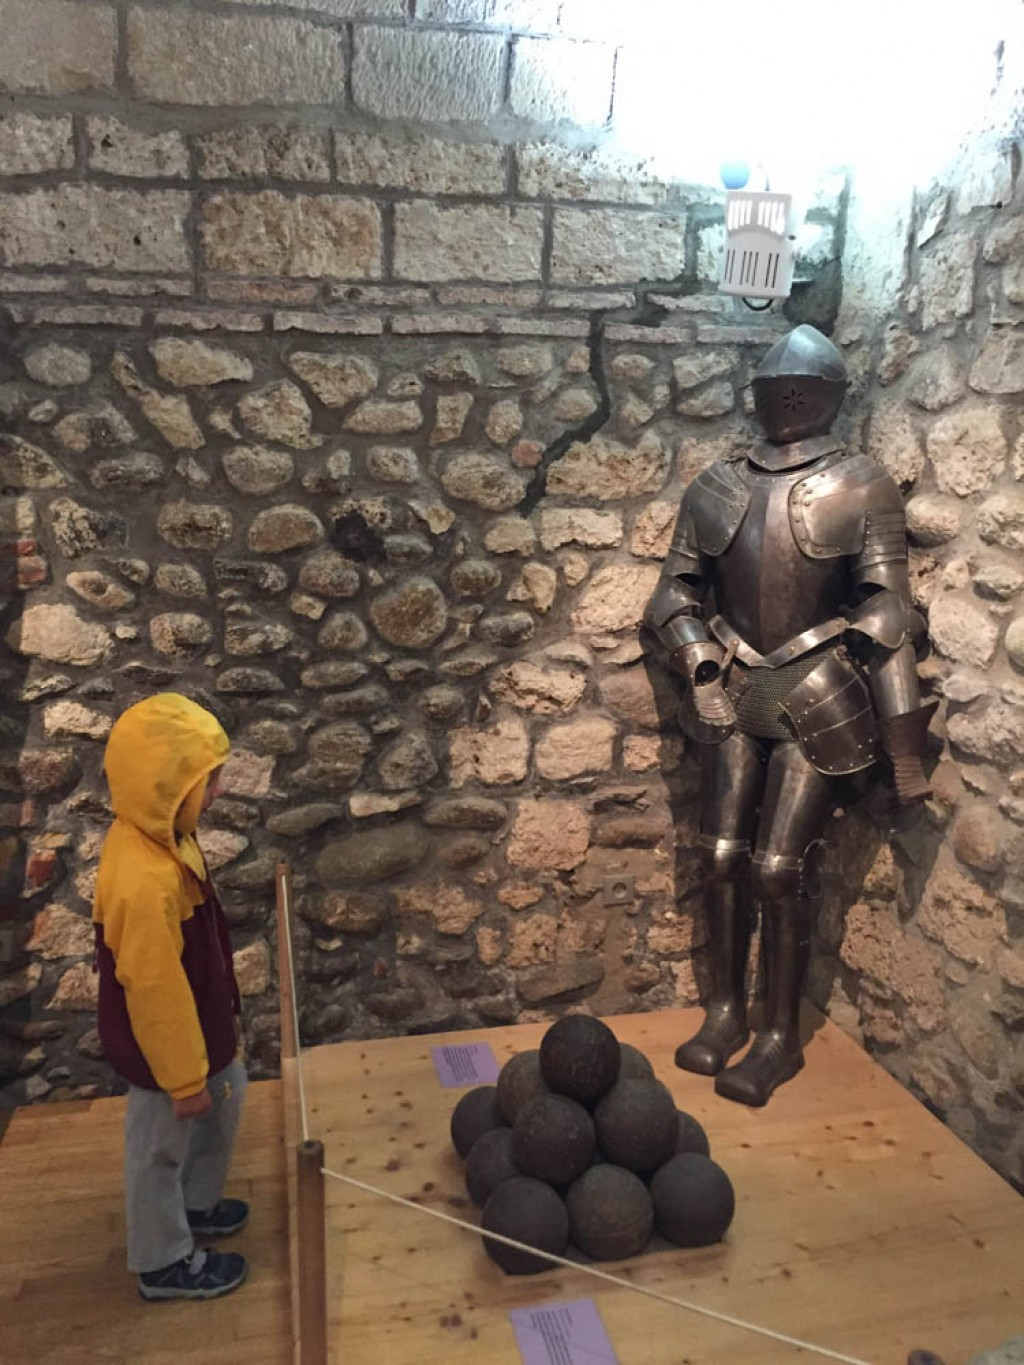 There wasn't a lot of rooms open inside the castle, but our kids still had a great time exploring.